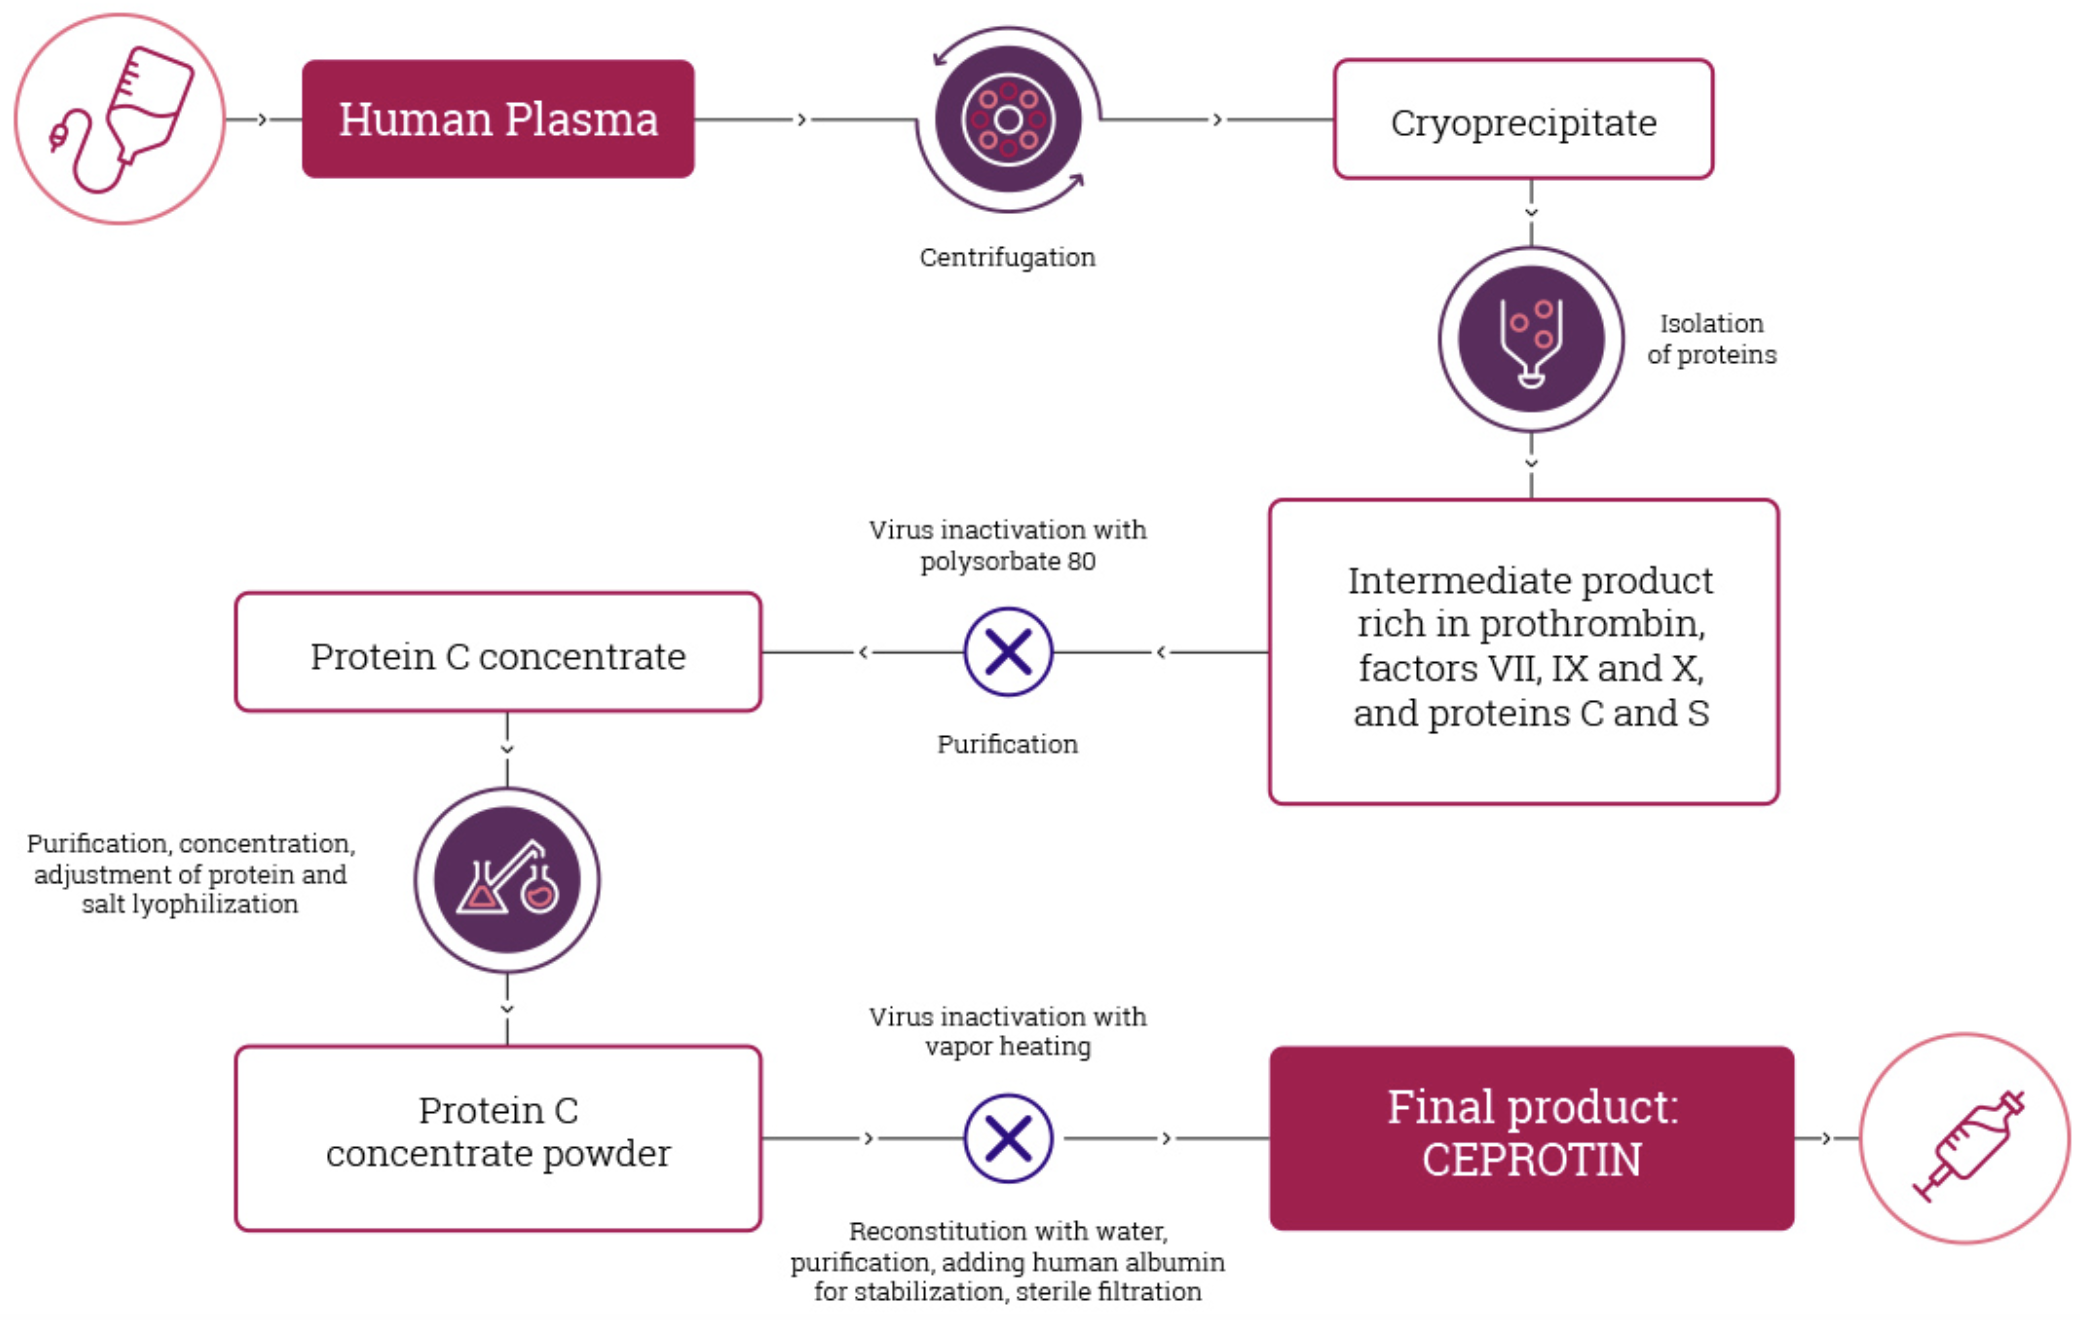 CEPROTIN manufacturing process